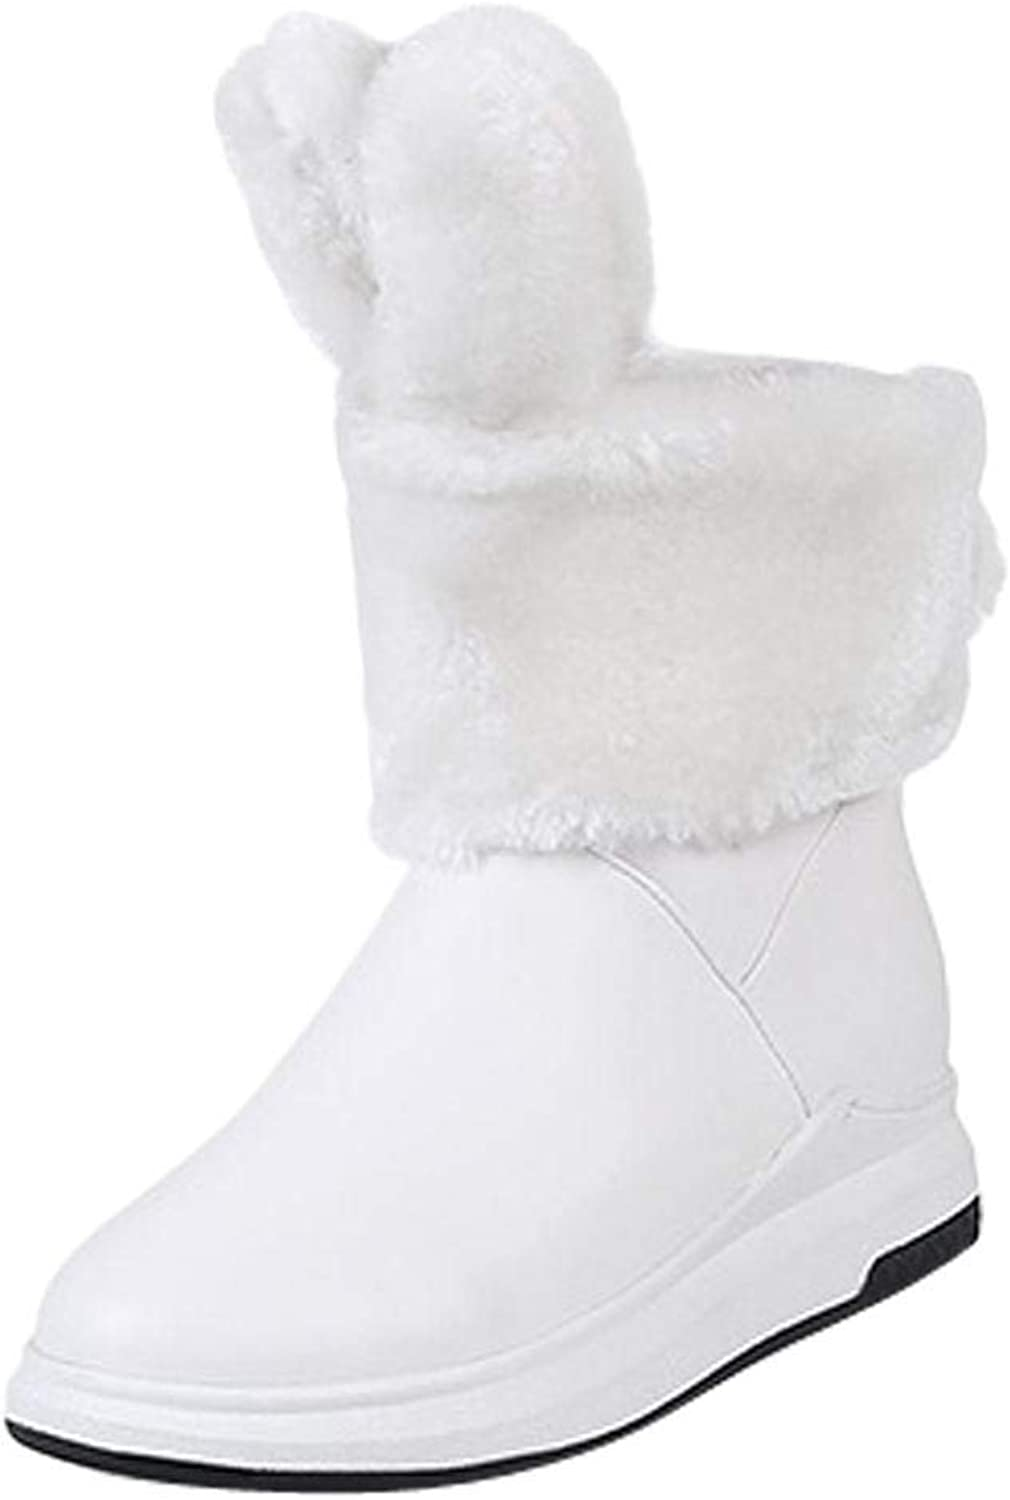 Gcanwea Women's Pompon Boots Breathable Fashion Winter Rubber Sole Warm Comfortable Rabbit Ears Cute Round Toe Girls Black 4.5 M US Pompon Boots